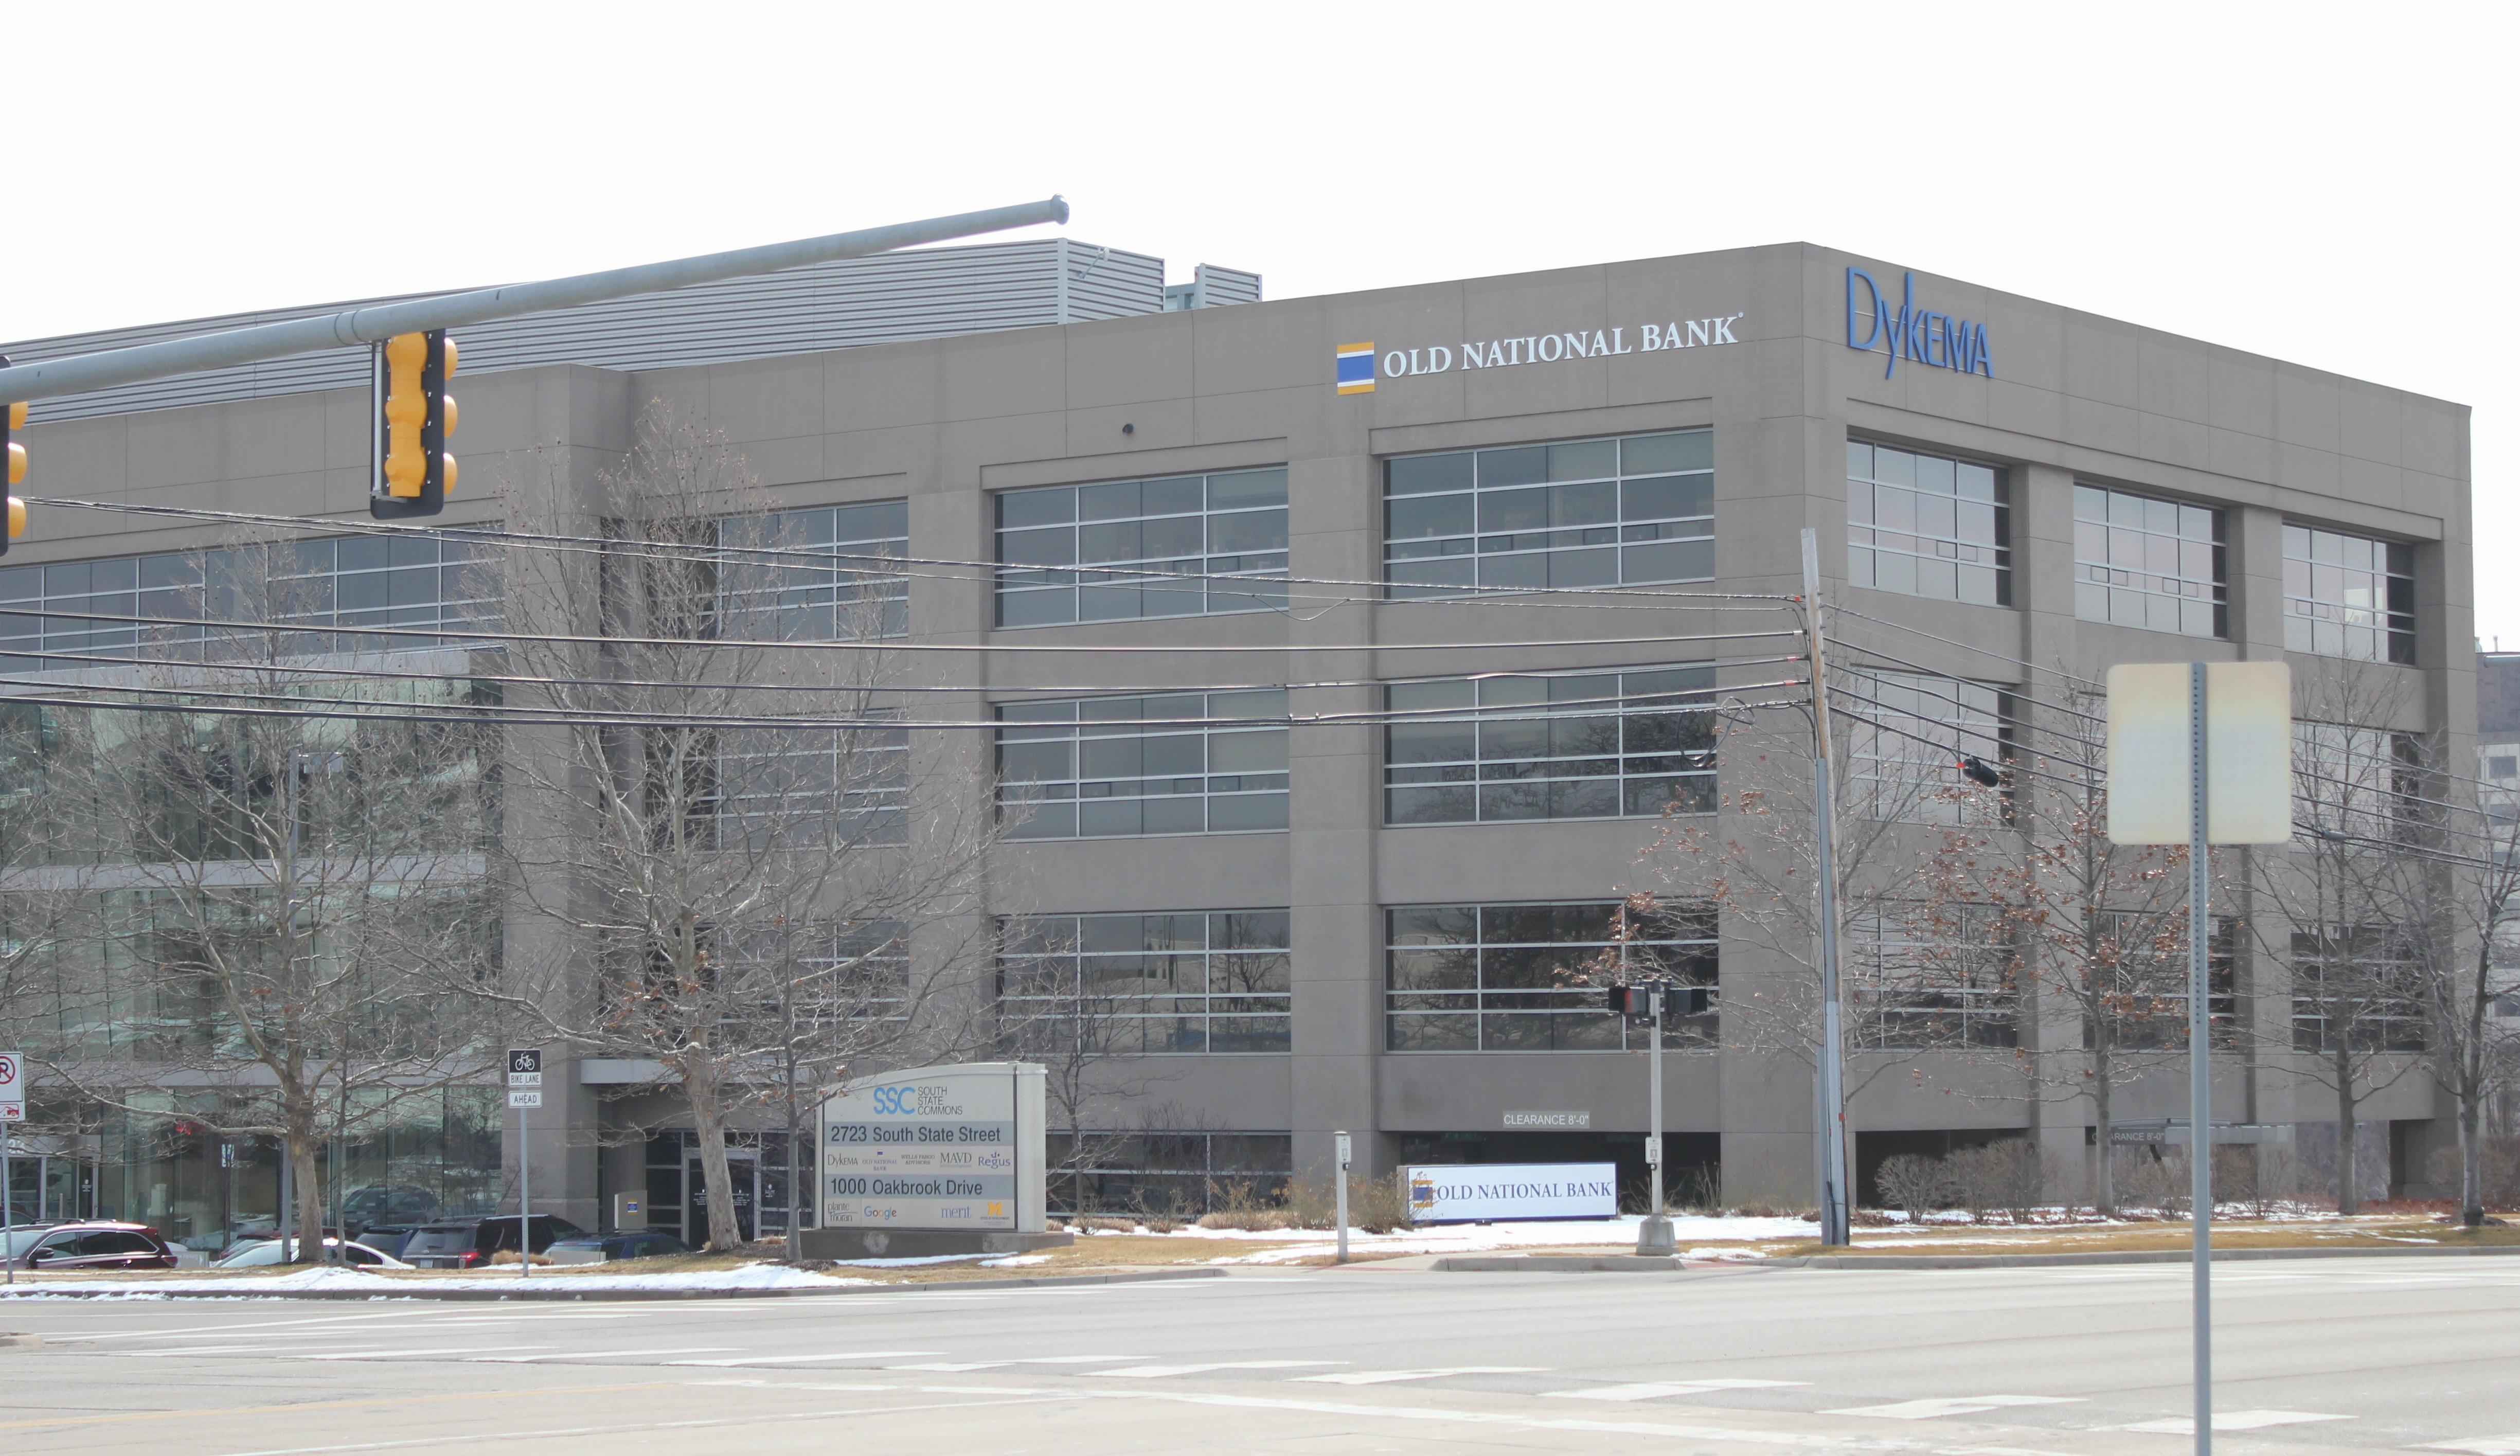 Best 30 Banks in Ann Arbor, MI with Reviews - YP.com